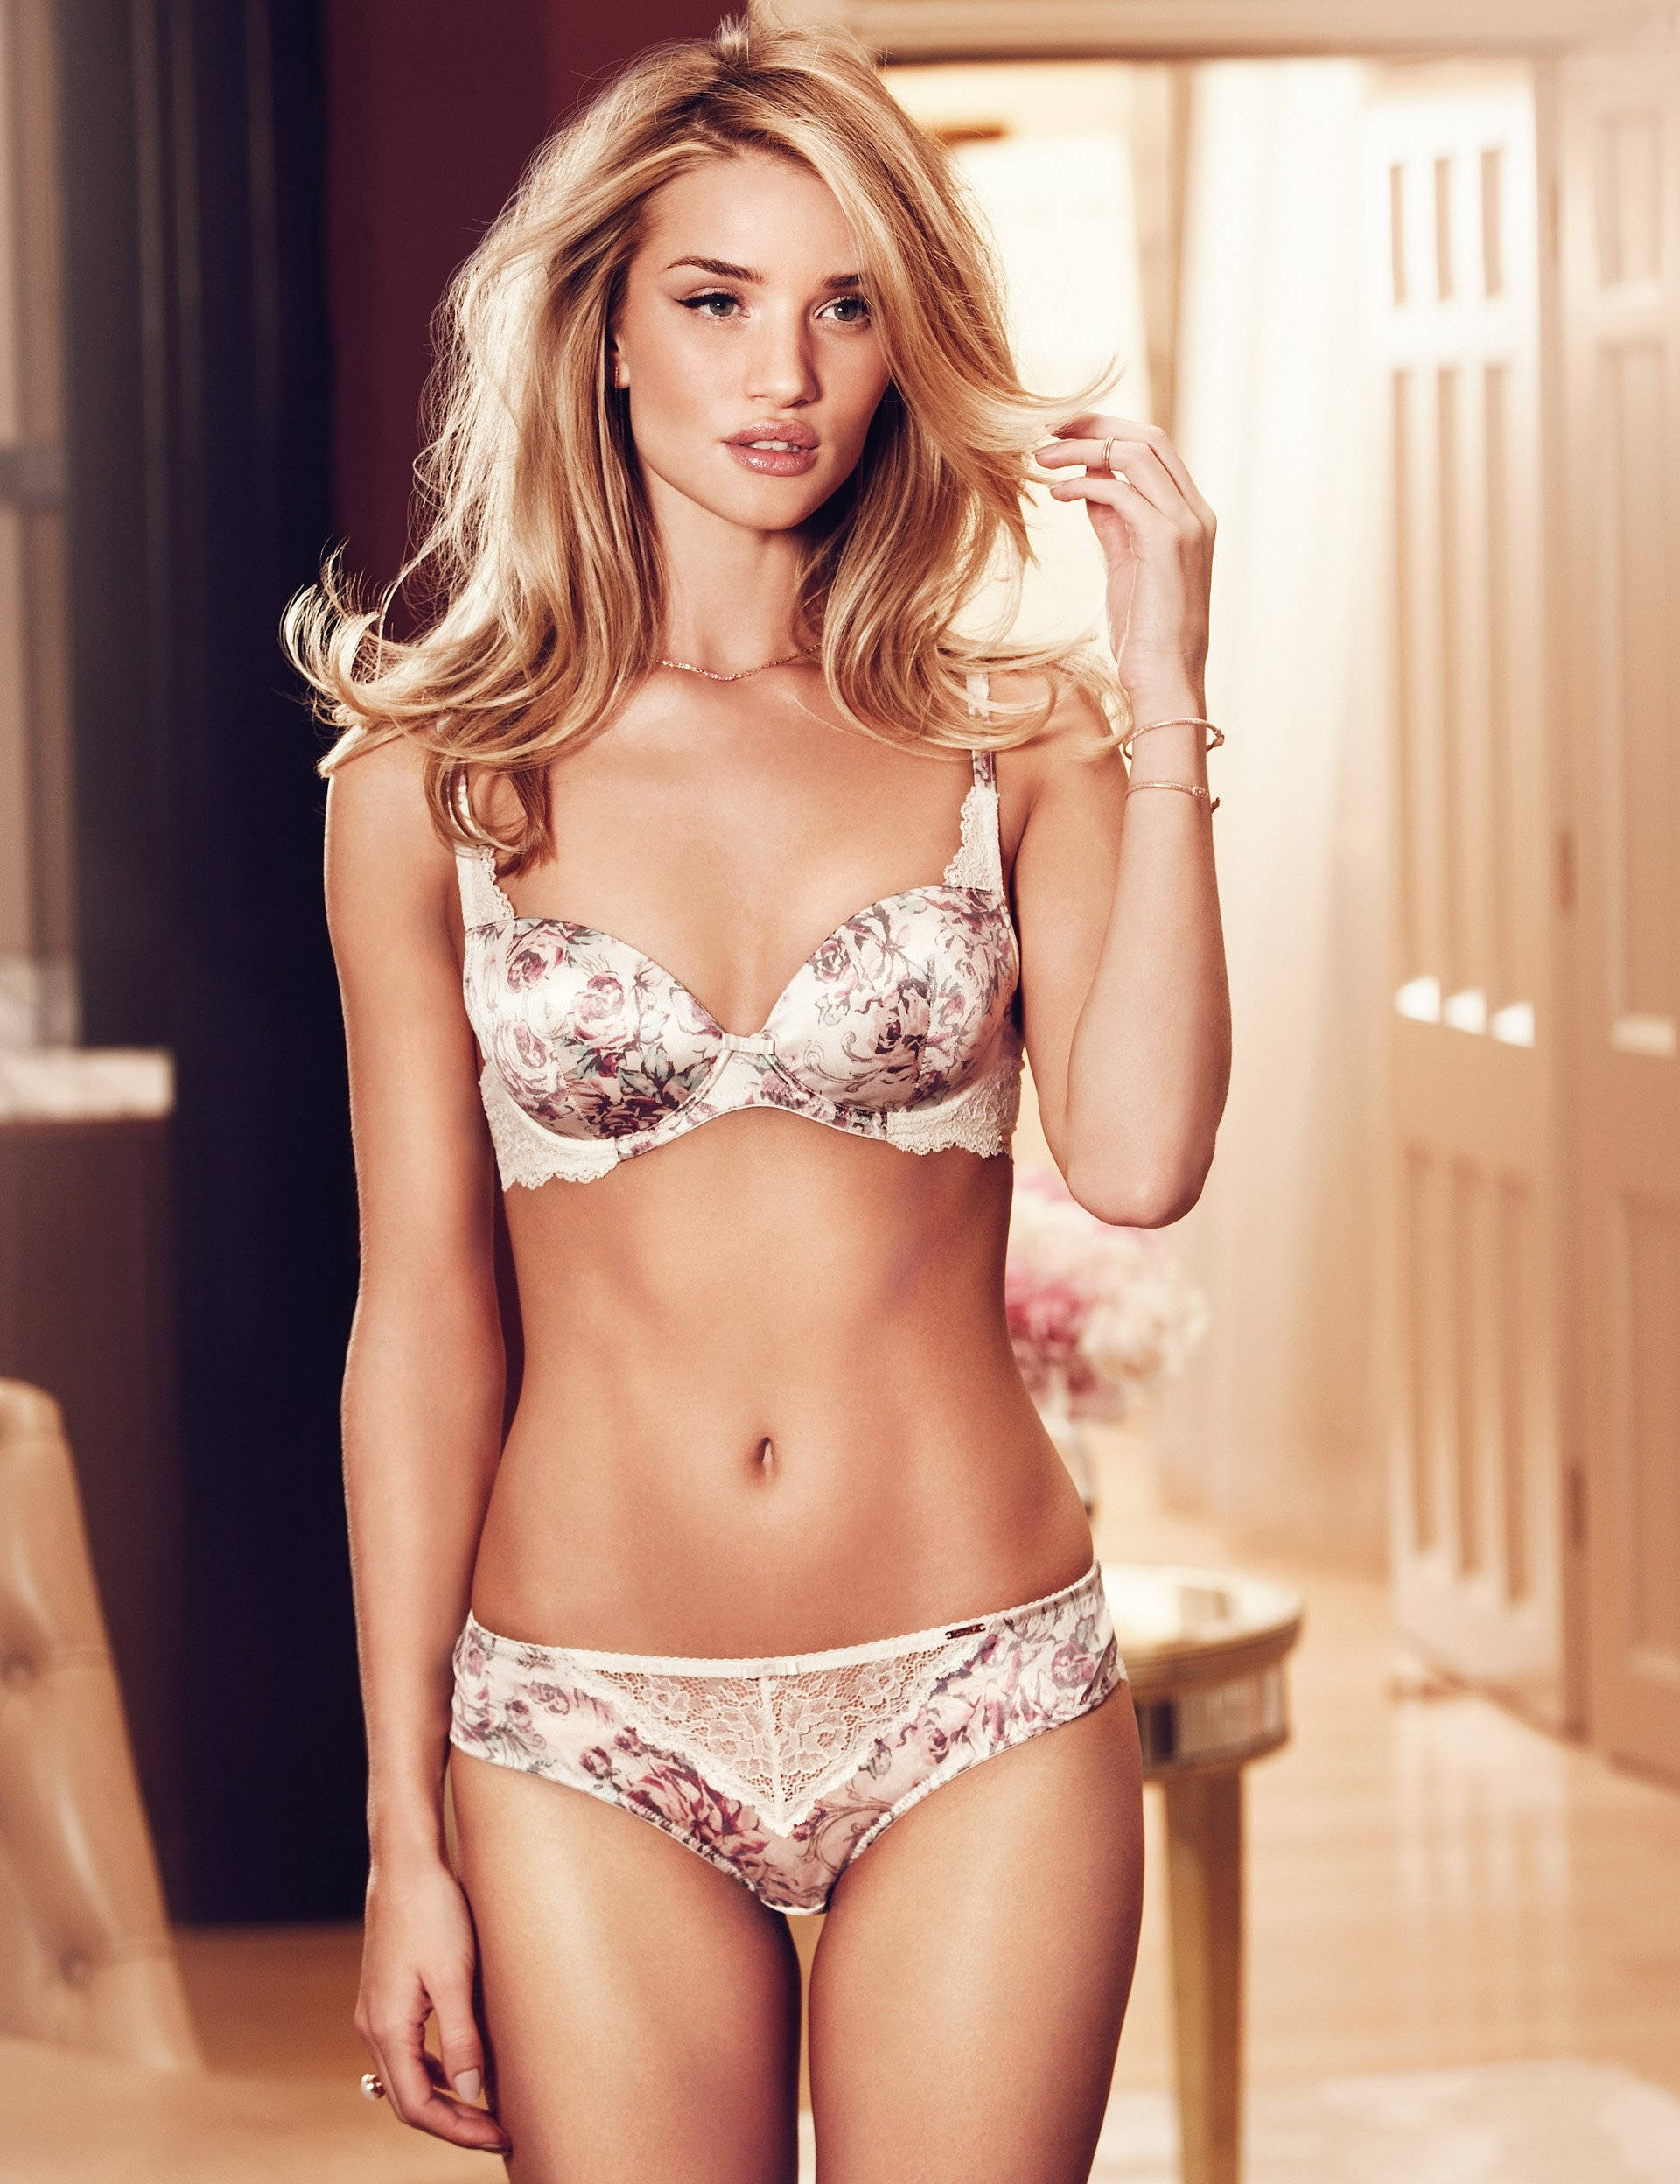 Rosie-Huntington-Whiteley-Autograph-lingerie-3